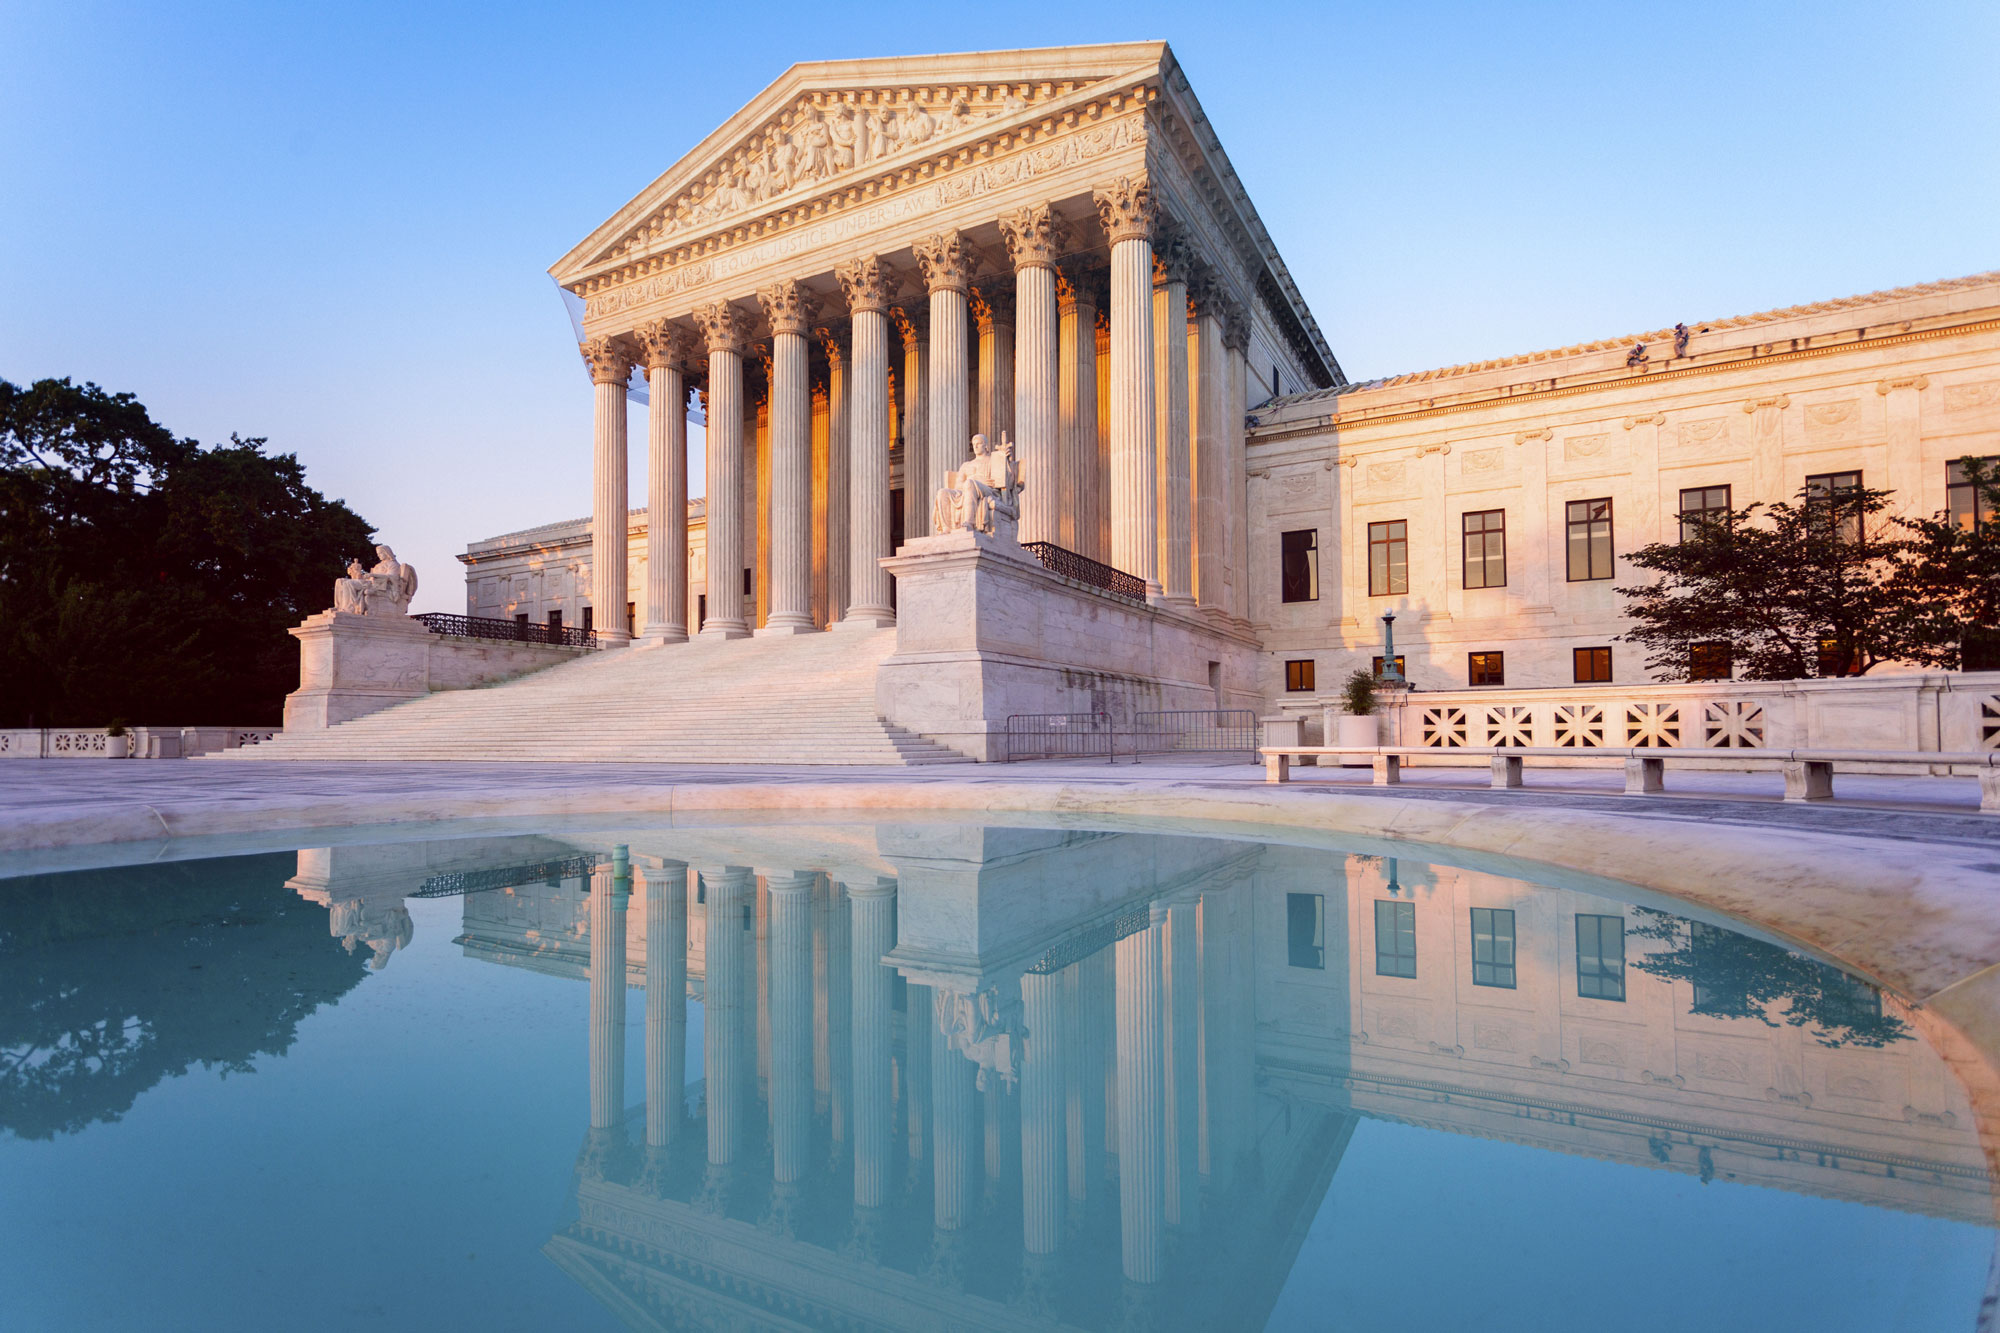 US-Supreme-Court-and-Reflecting-Pool